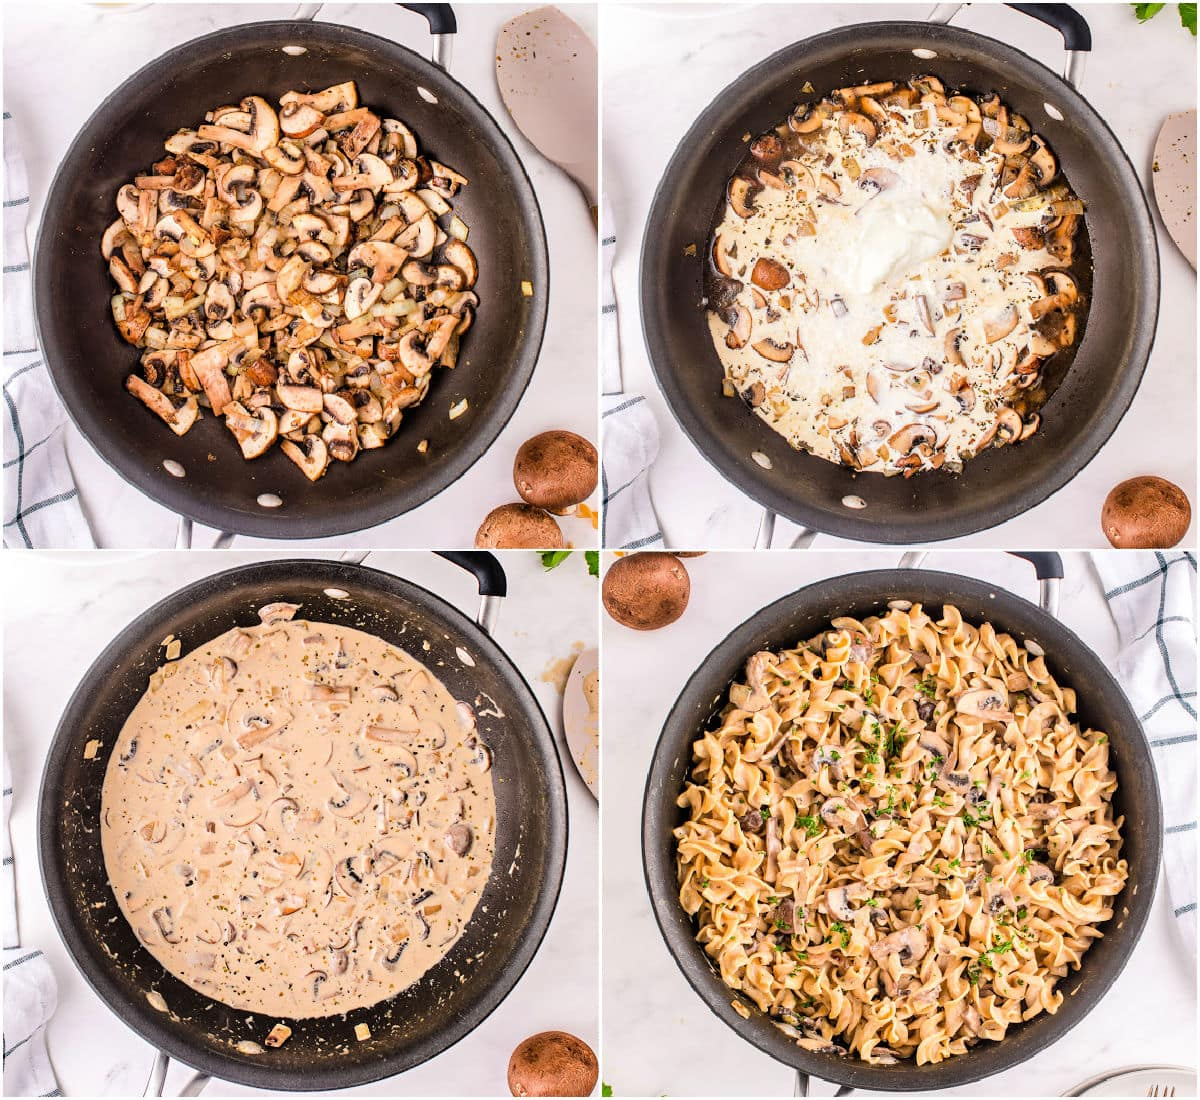 four image collage showing how to make mushroom stroganoff in a skillet.